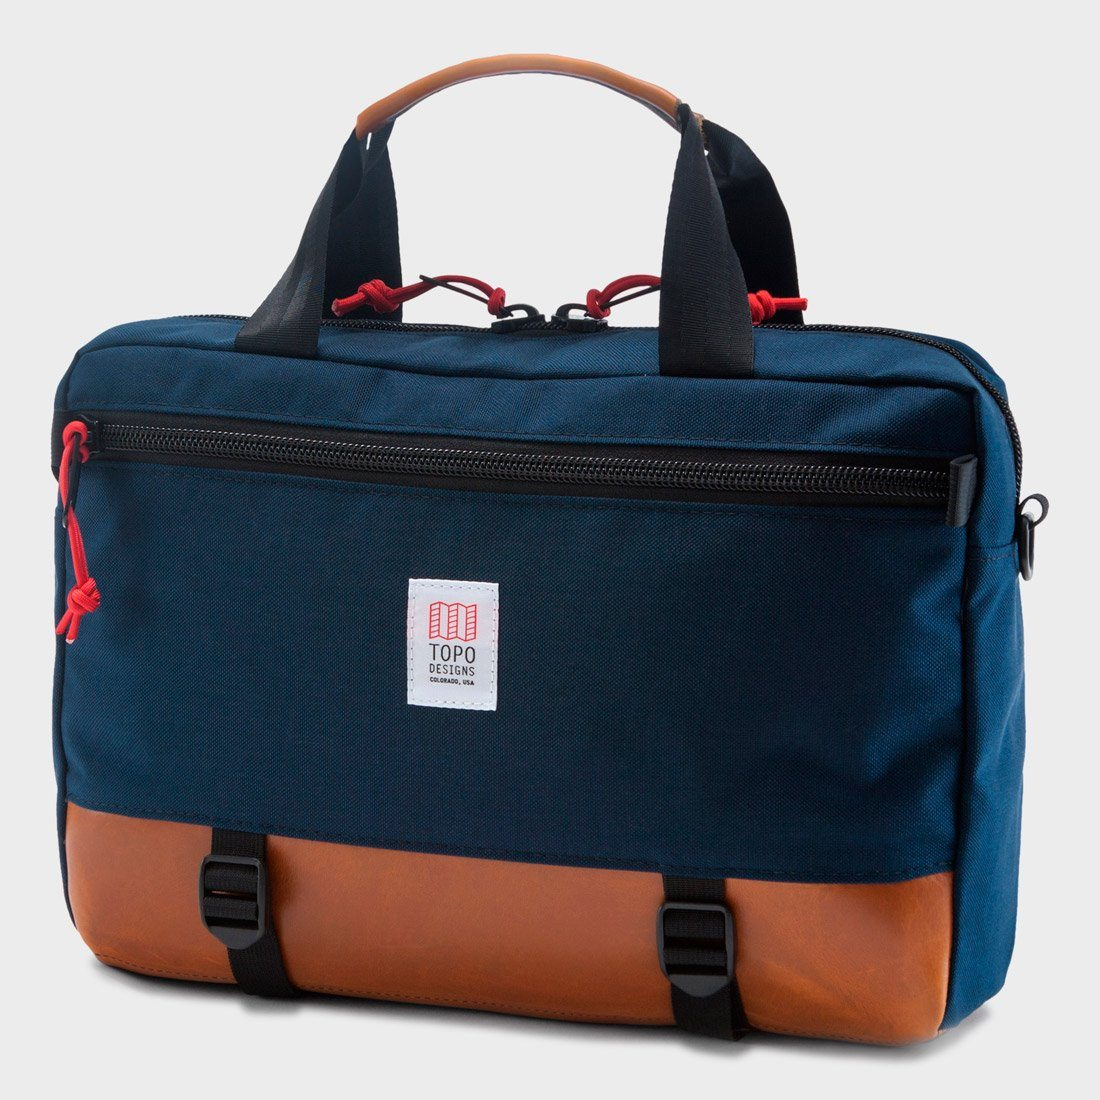 Topo Designs Commuter Briefcase Navy / Brown Leather